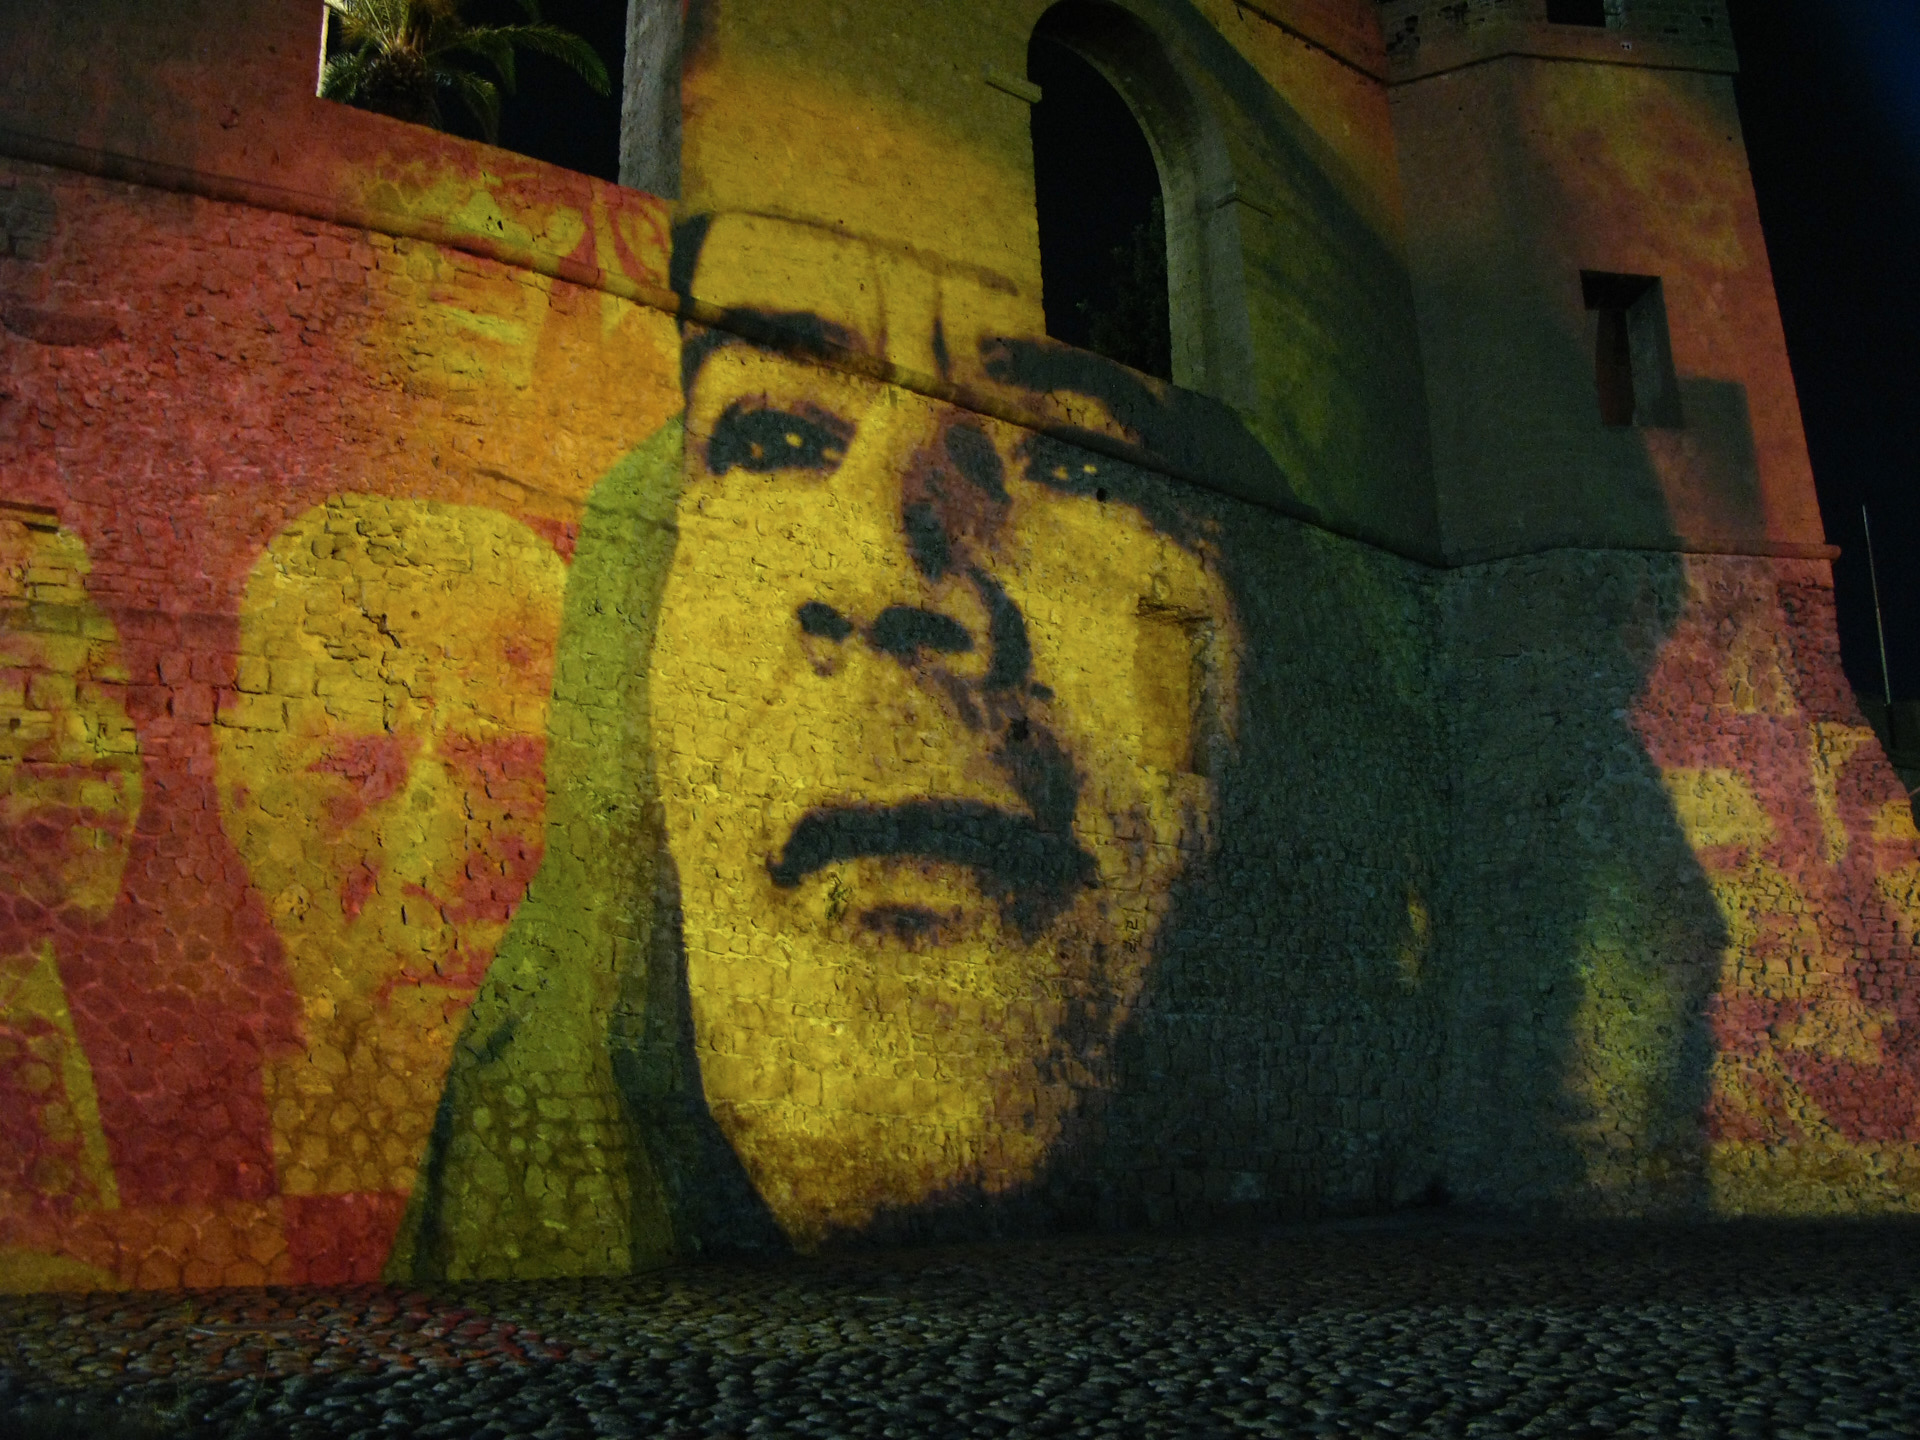 Ghaddafi's image projected onto the walls of Assaria al-Hamra (Red Castle fortress). 2009 Tripoli, Libya.